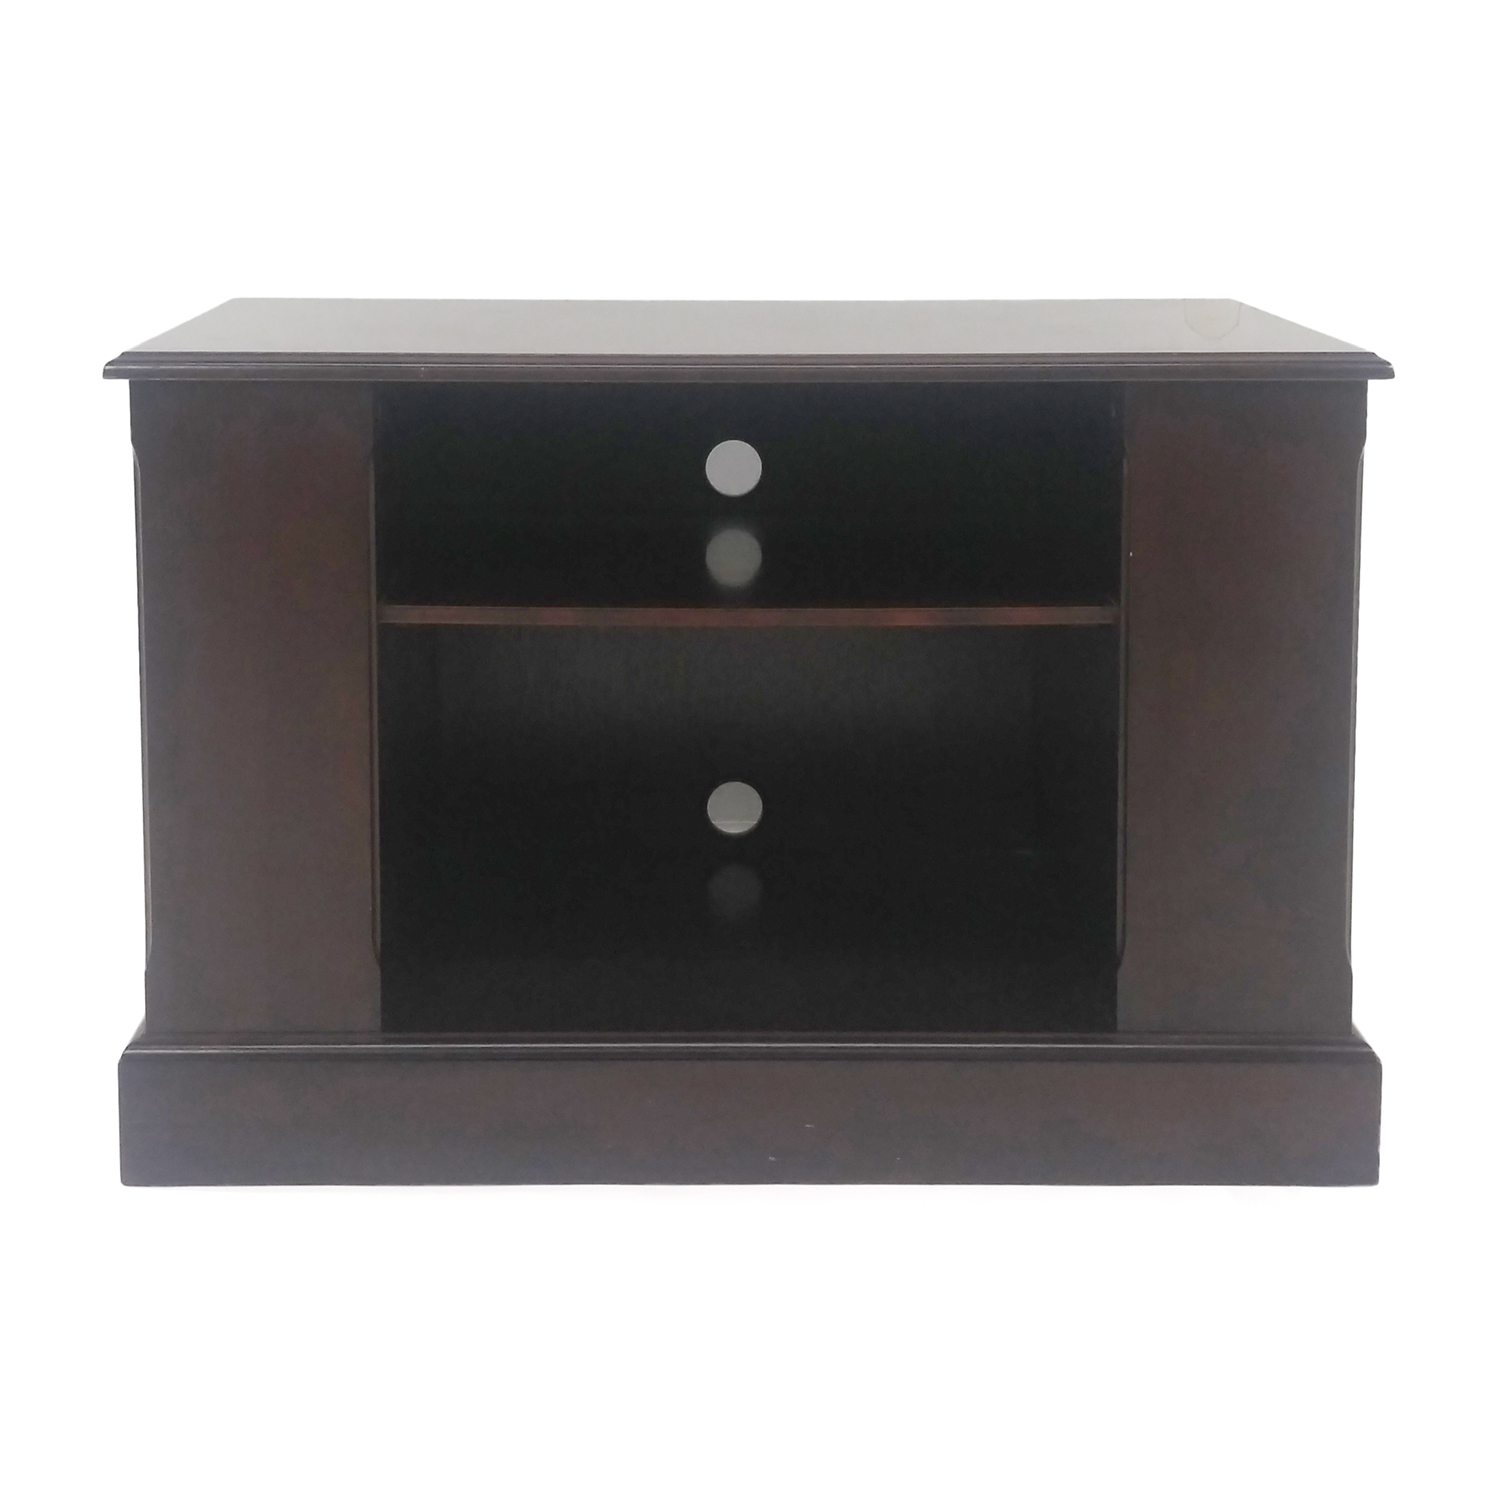 Pier One Pier One TV Console price